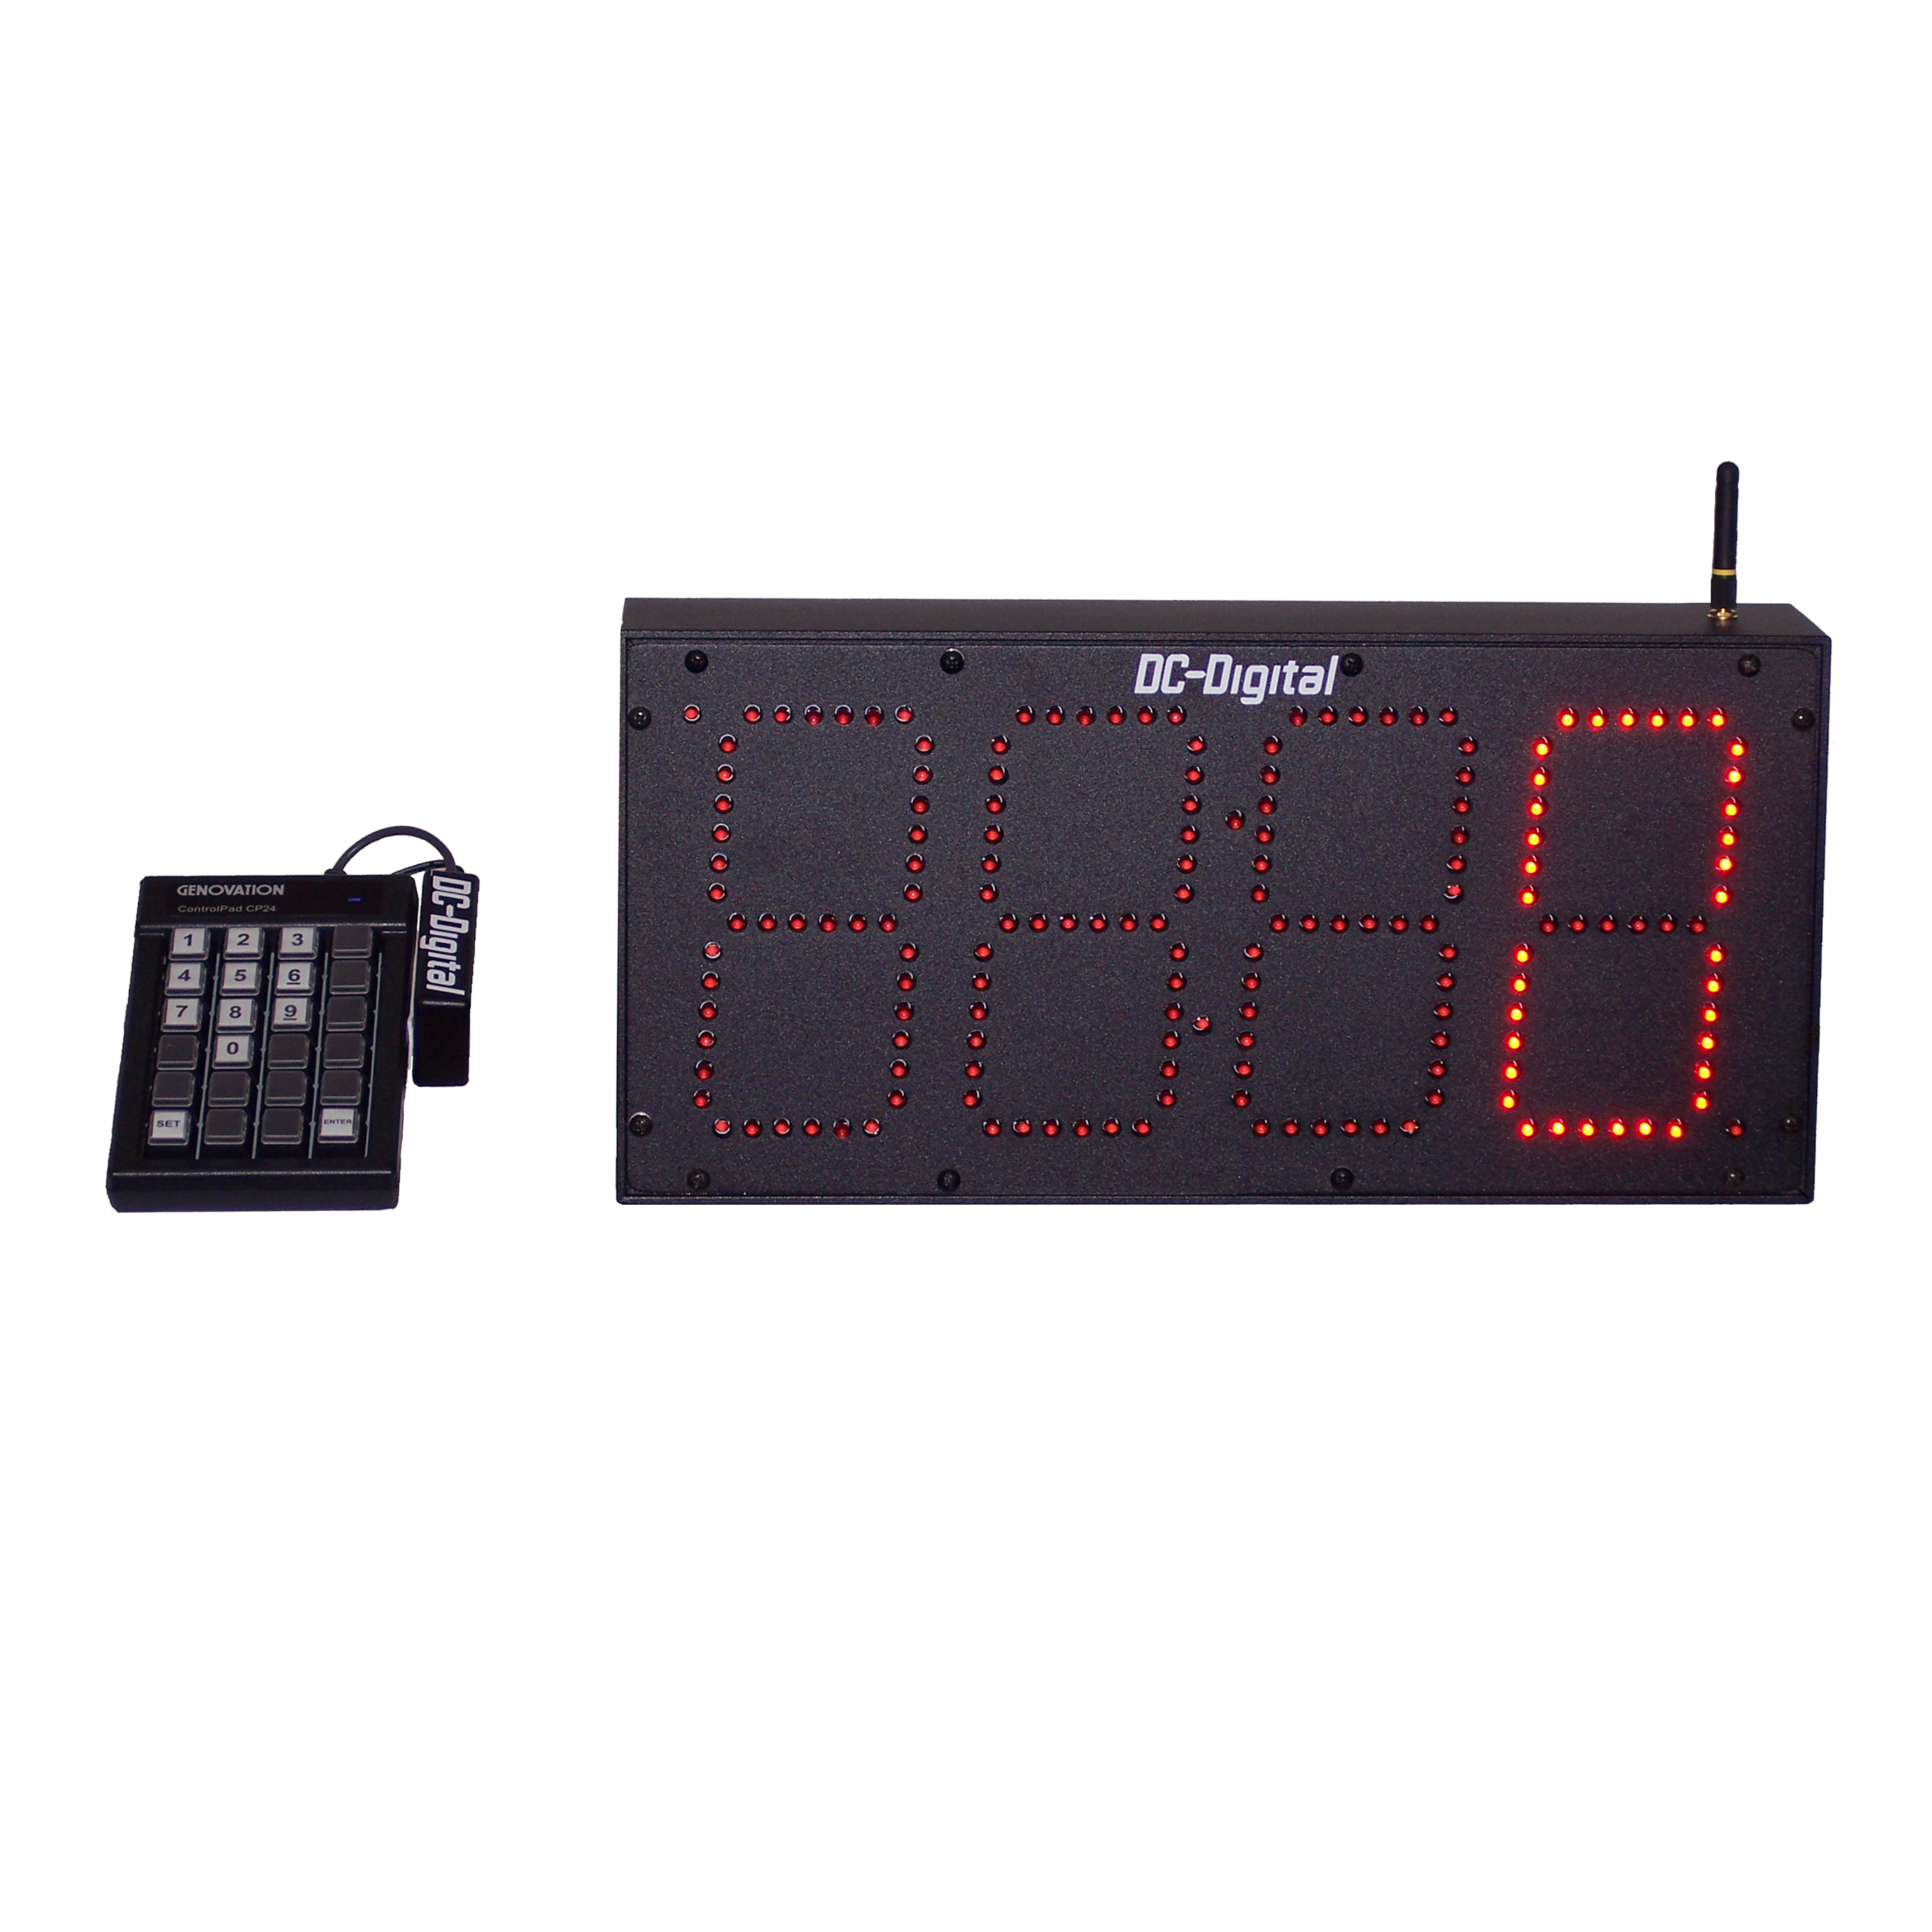 6 inch 4 digit large number display that has keypad entry for quick number display 1500 feet range